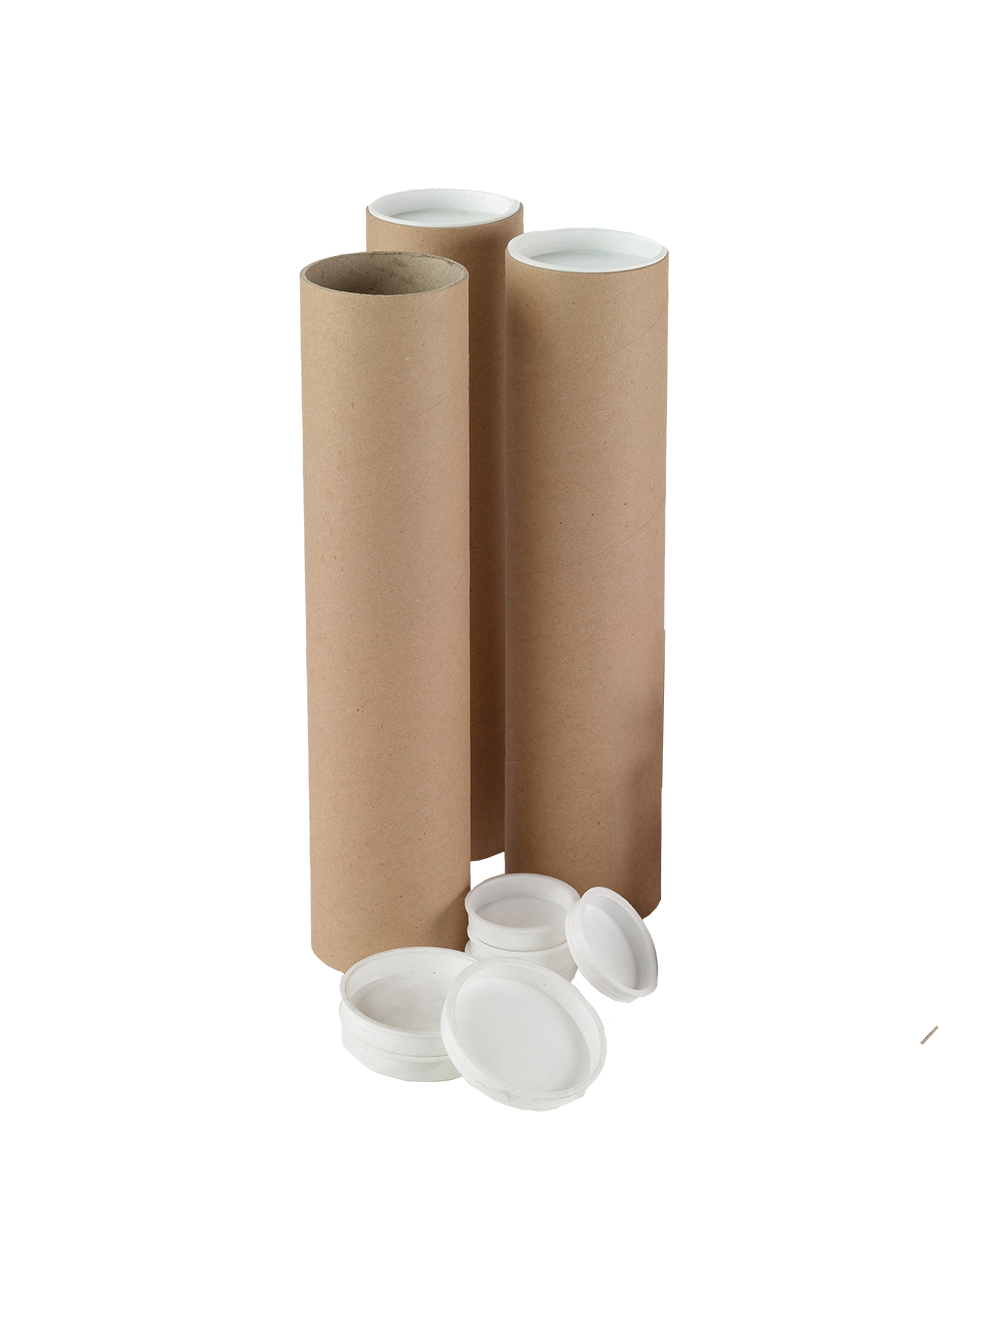 12 Pack Postal Mailing Tubes with End Caps 1.5 x 25 inch